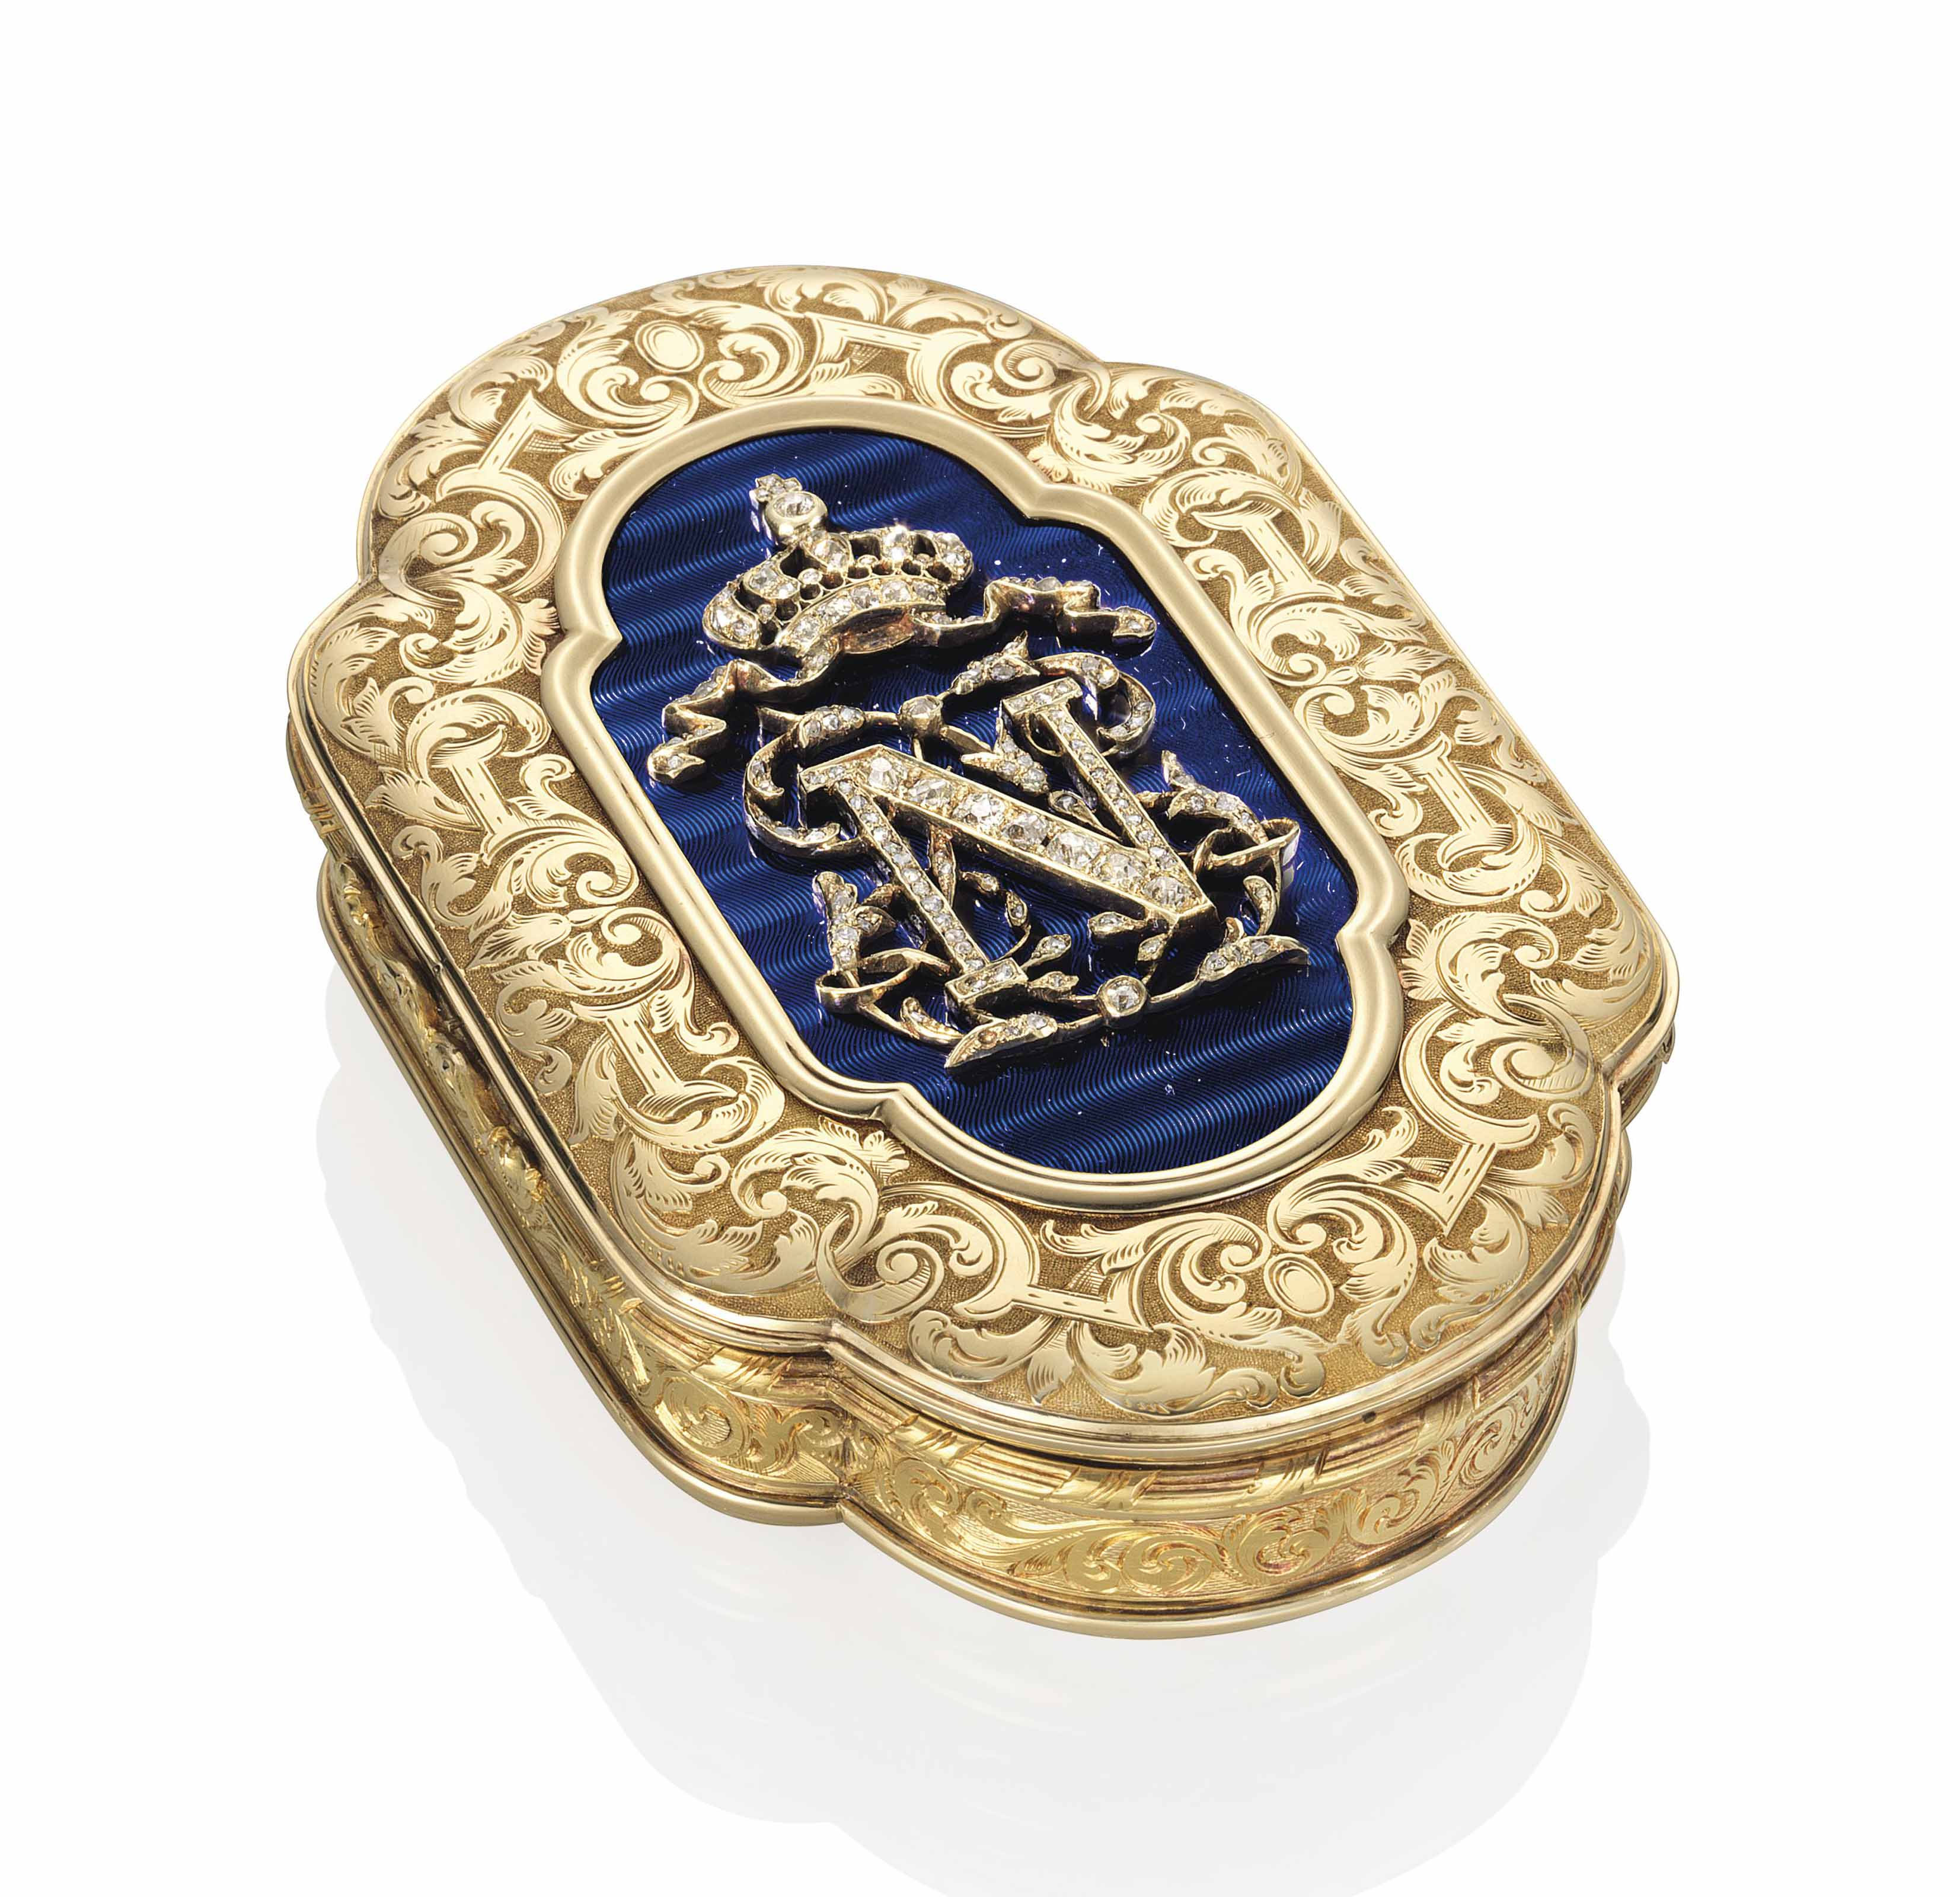 A FRENCH JEWELLED ENAMELLED GOLD IMPERIAL PRESENTATION SNUFF-BOX